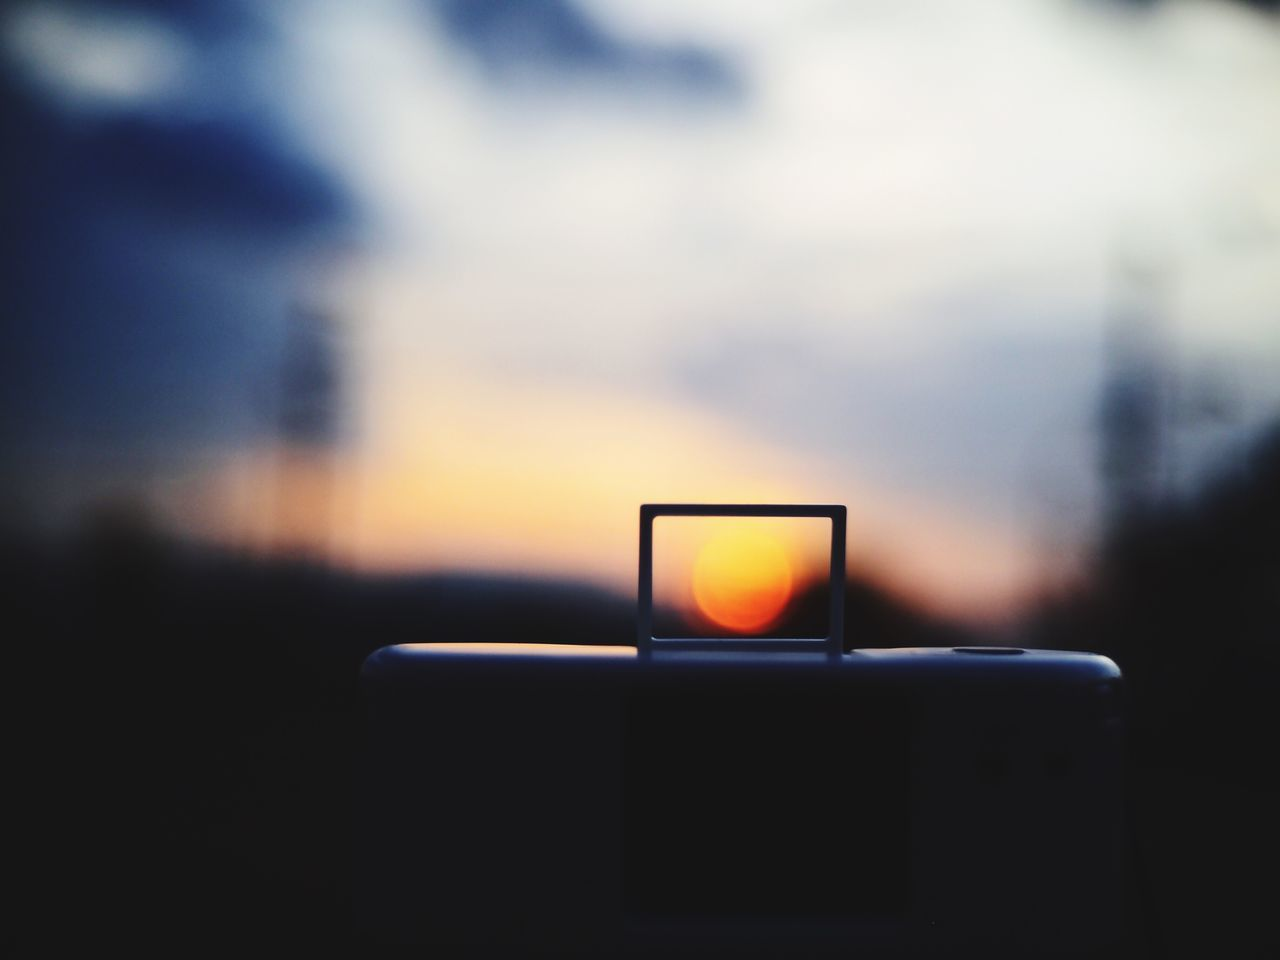 Sunset Seen Through Digital Tablet Handle